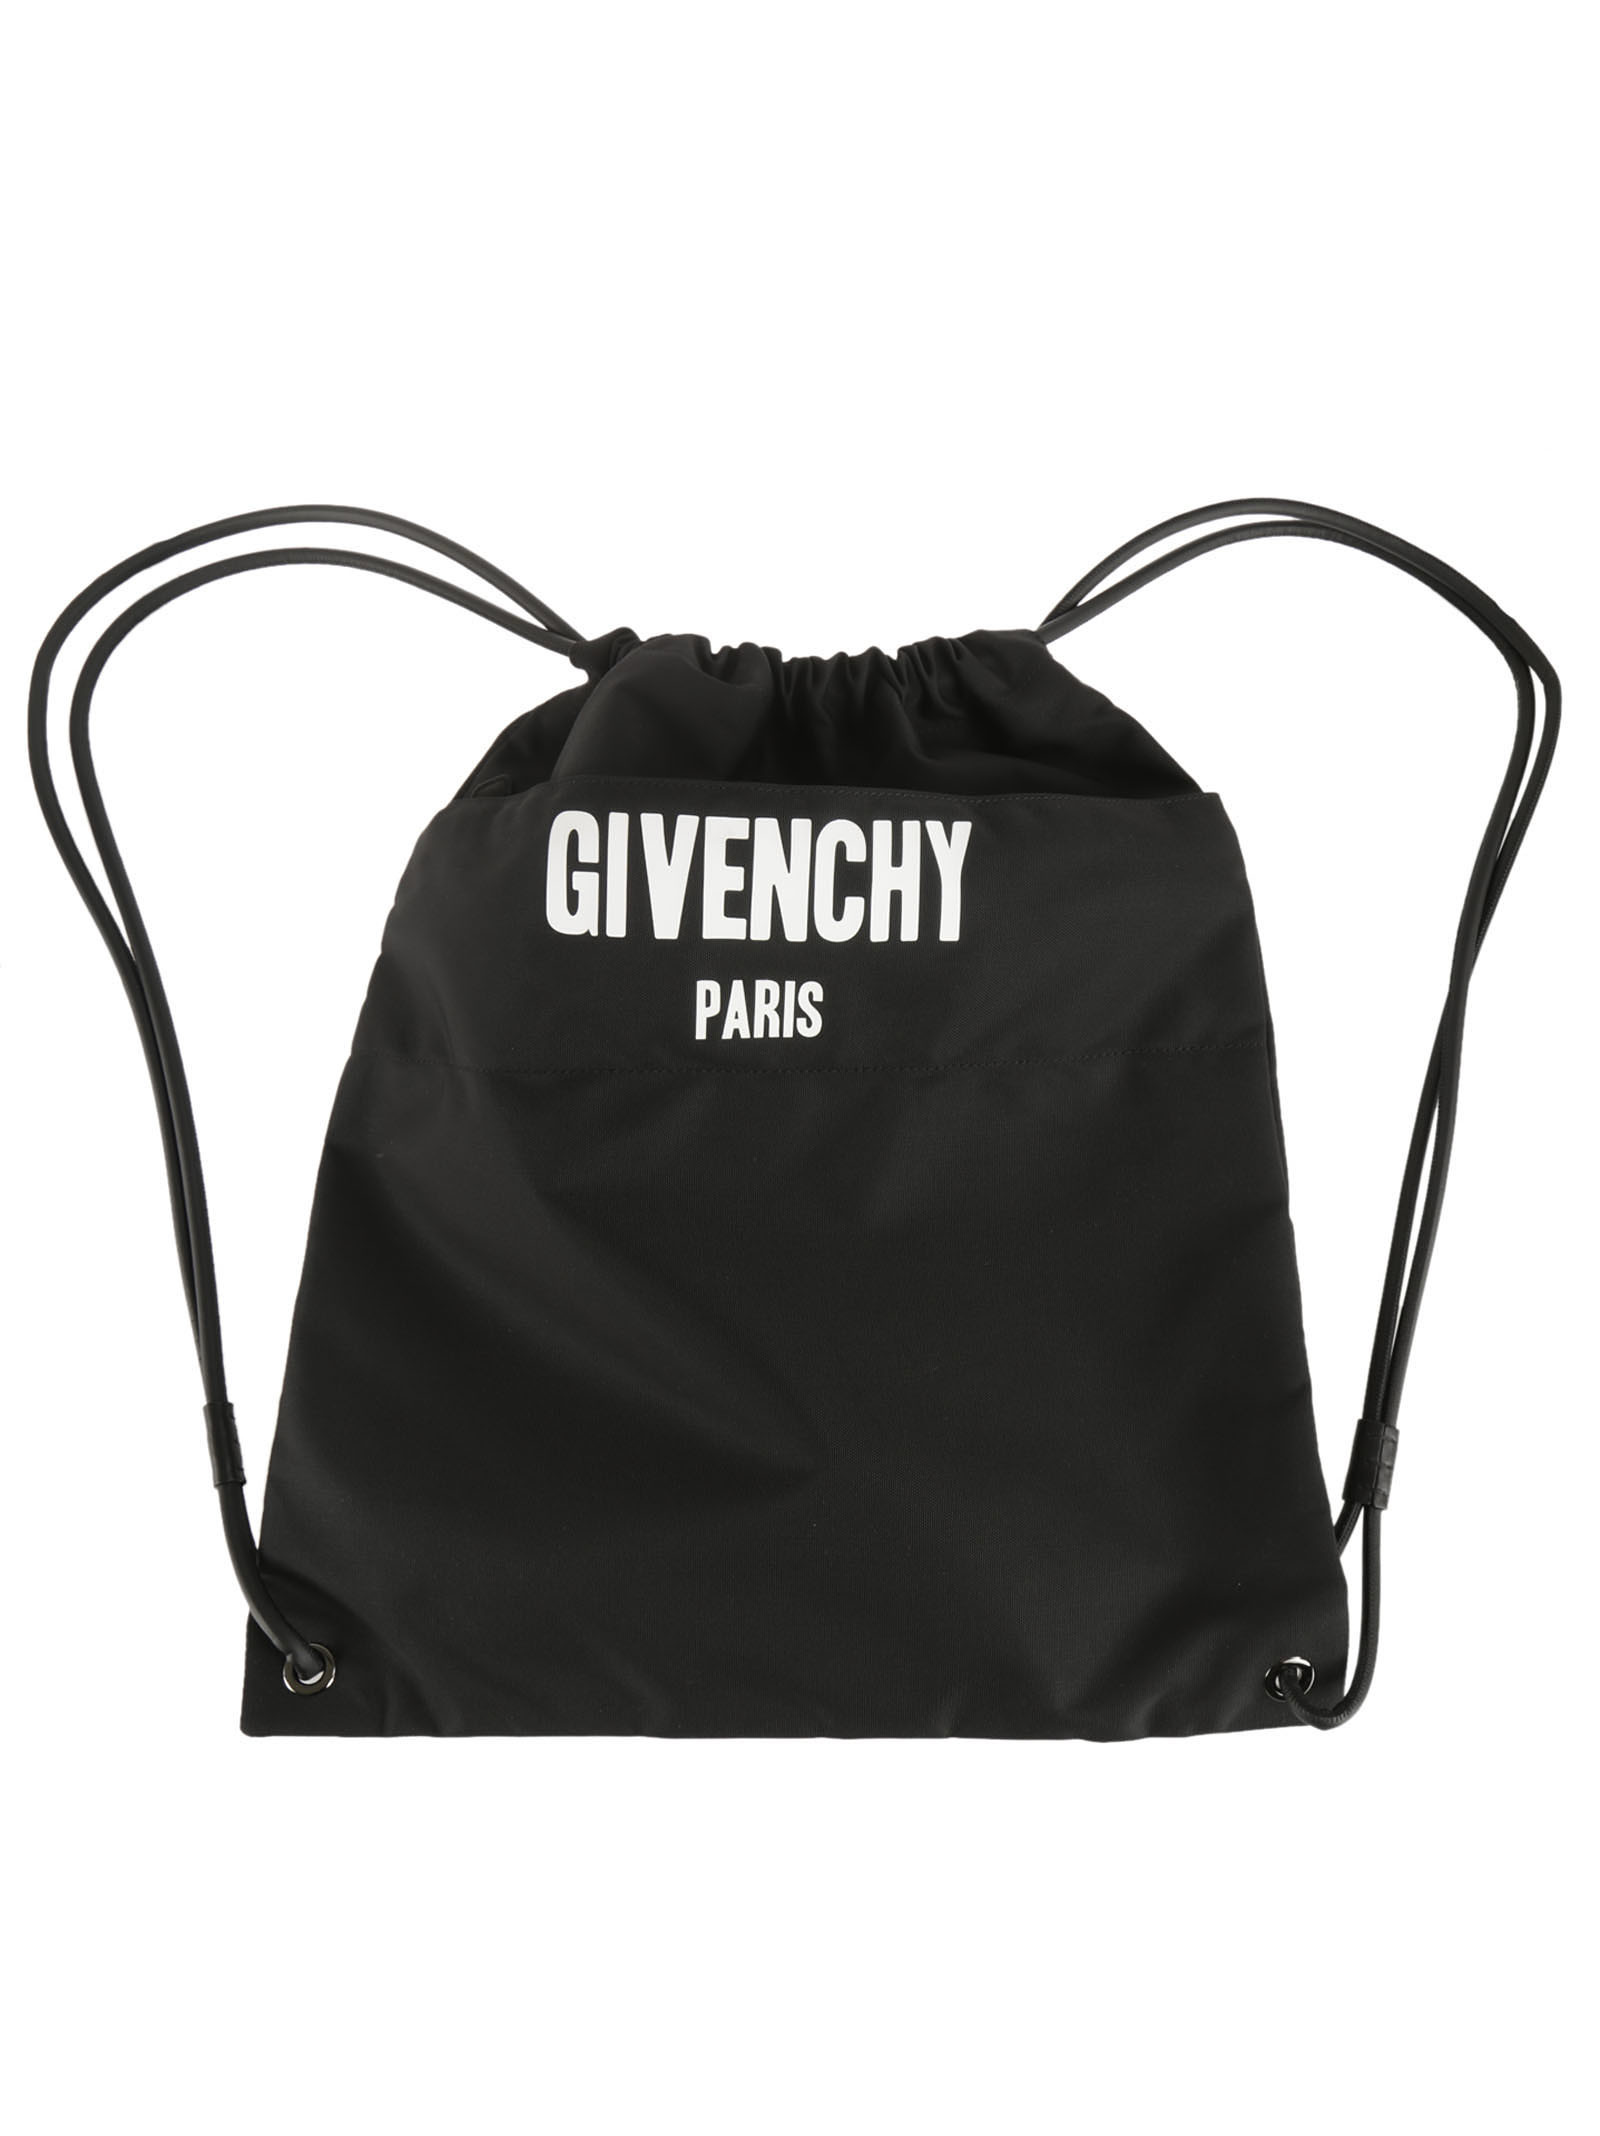 Givenchy Drawstring Backpack